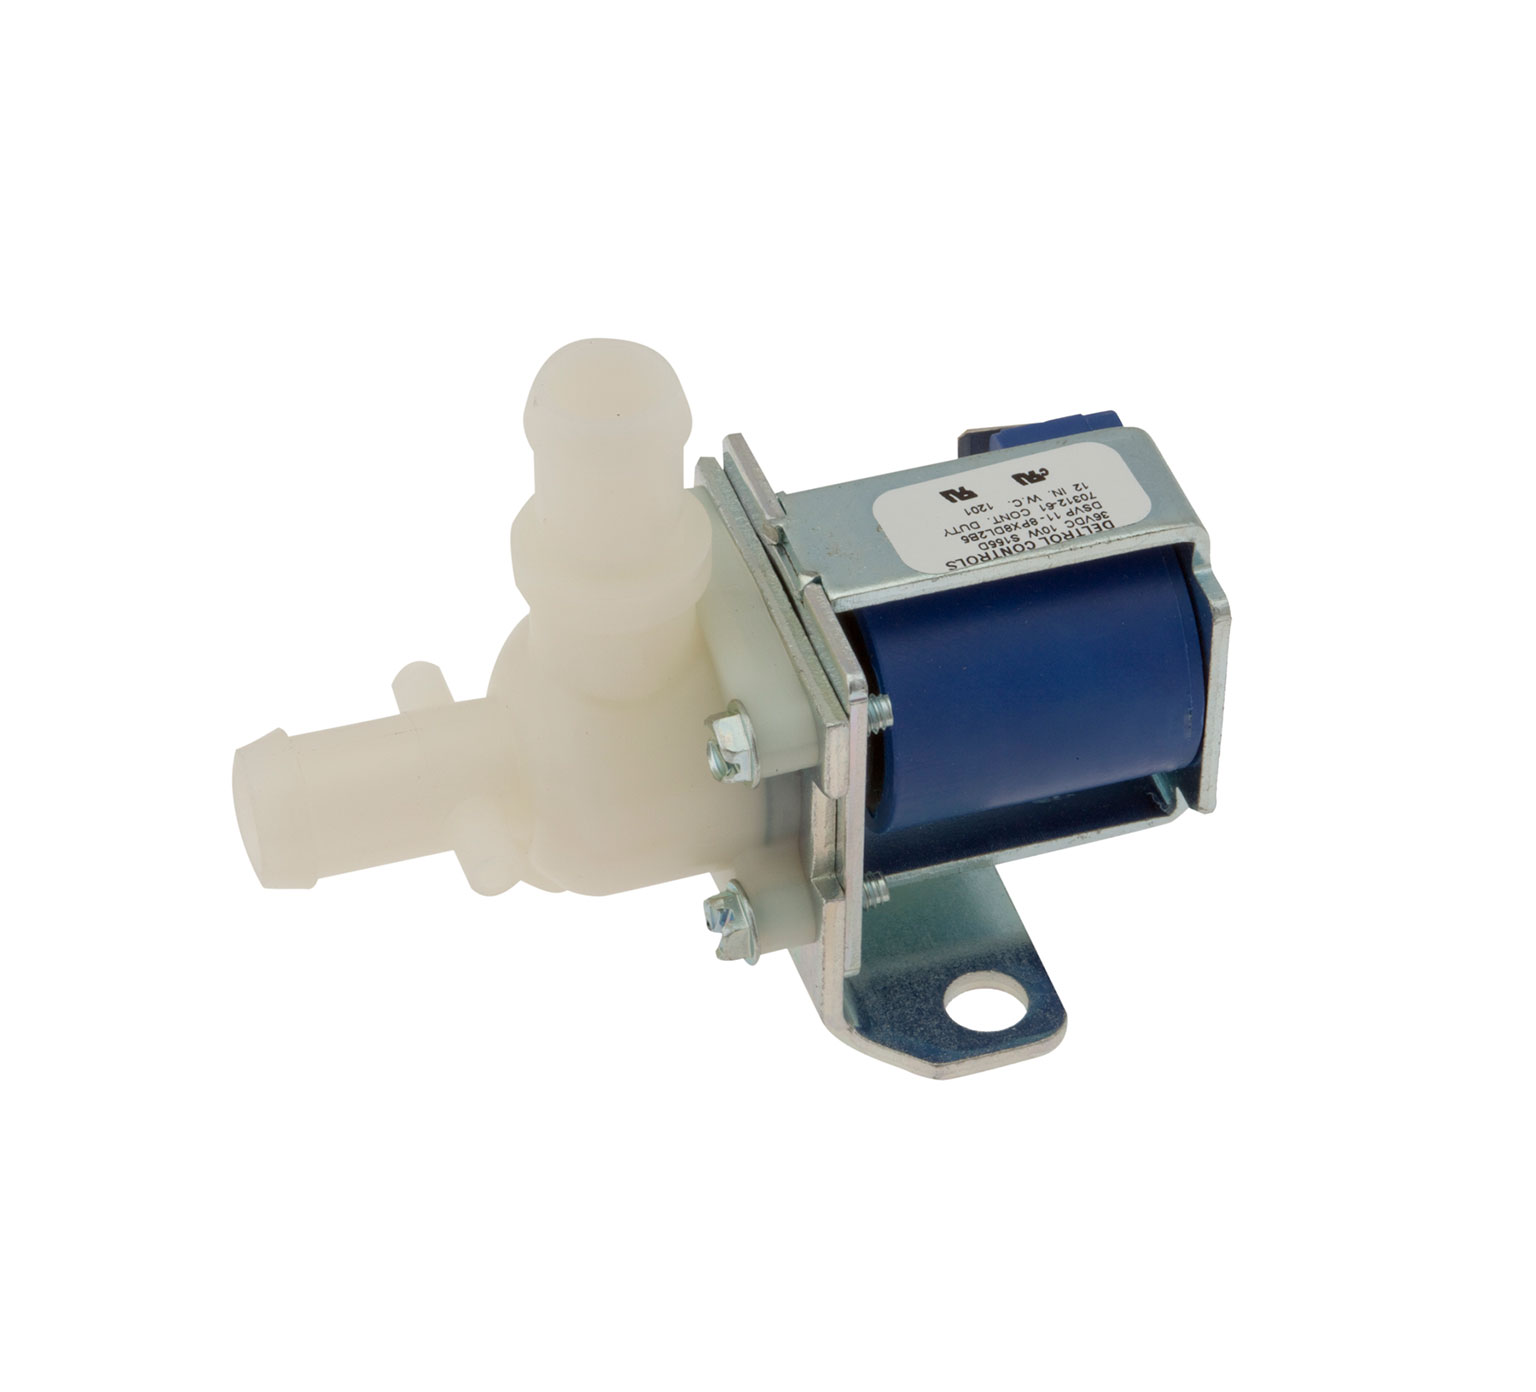 Solution Valve - 24 Volt Fixed - Replaces Clarke 59610A